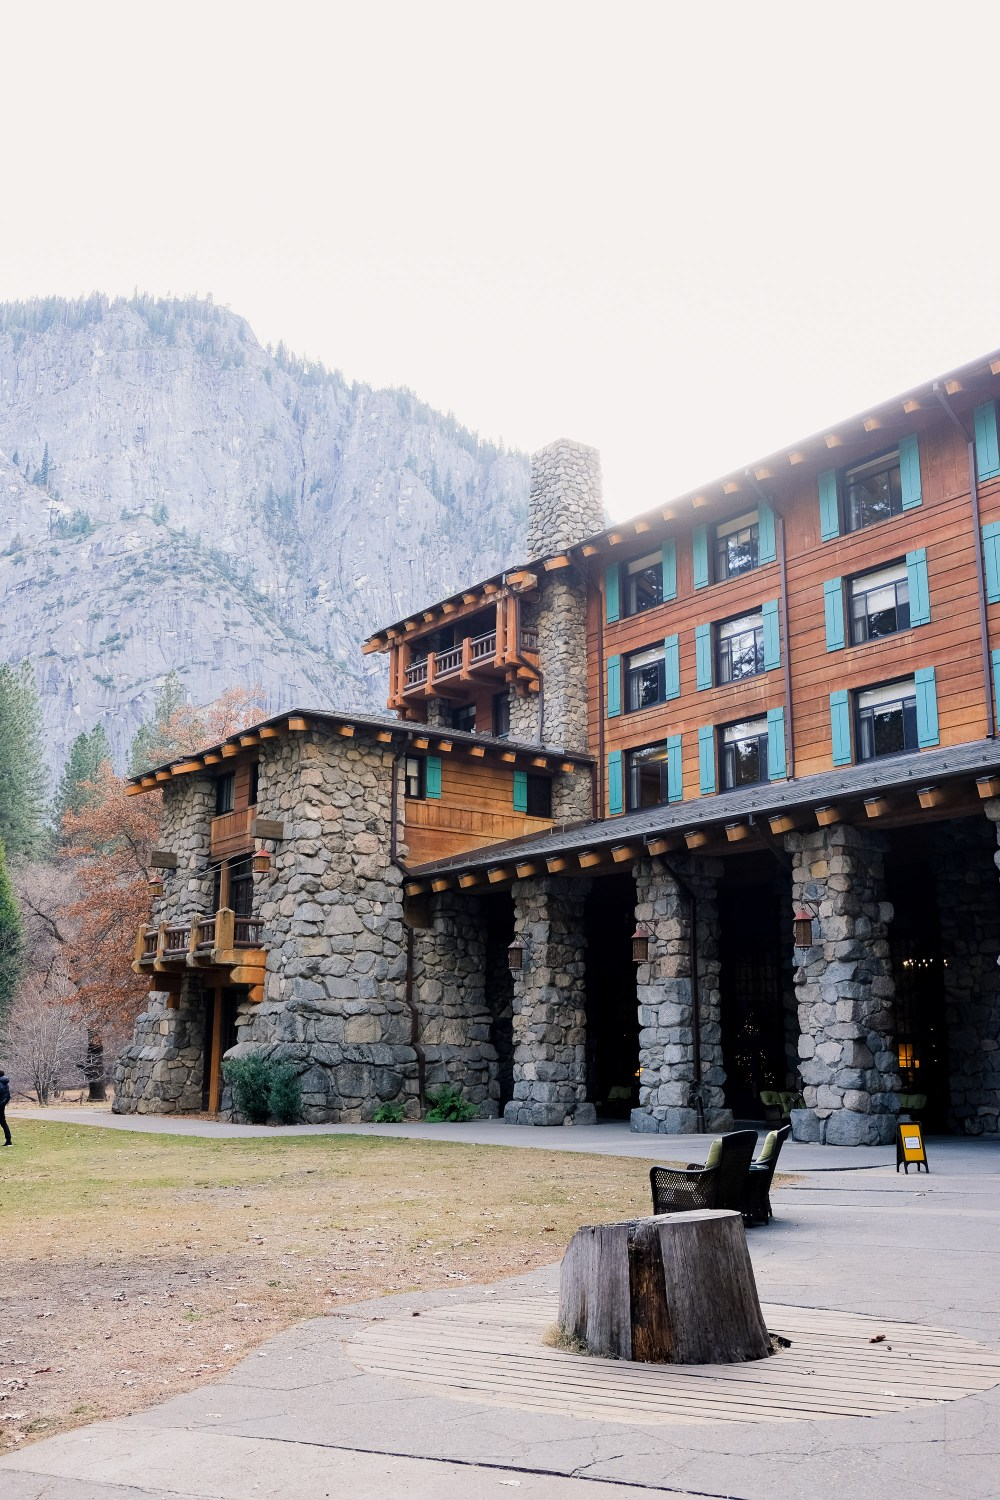 The Majestic Yosemite Hotel // Things To Do in Yosemite in Winter